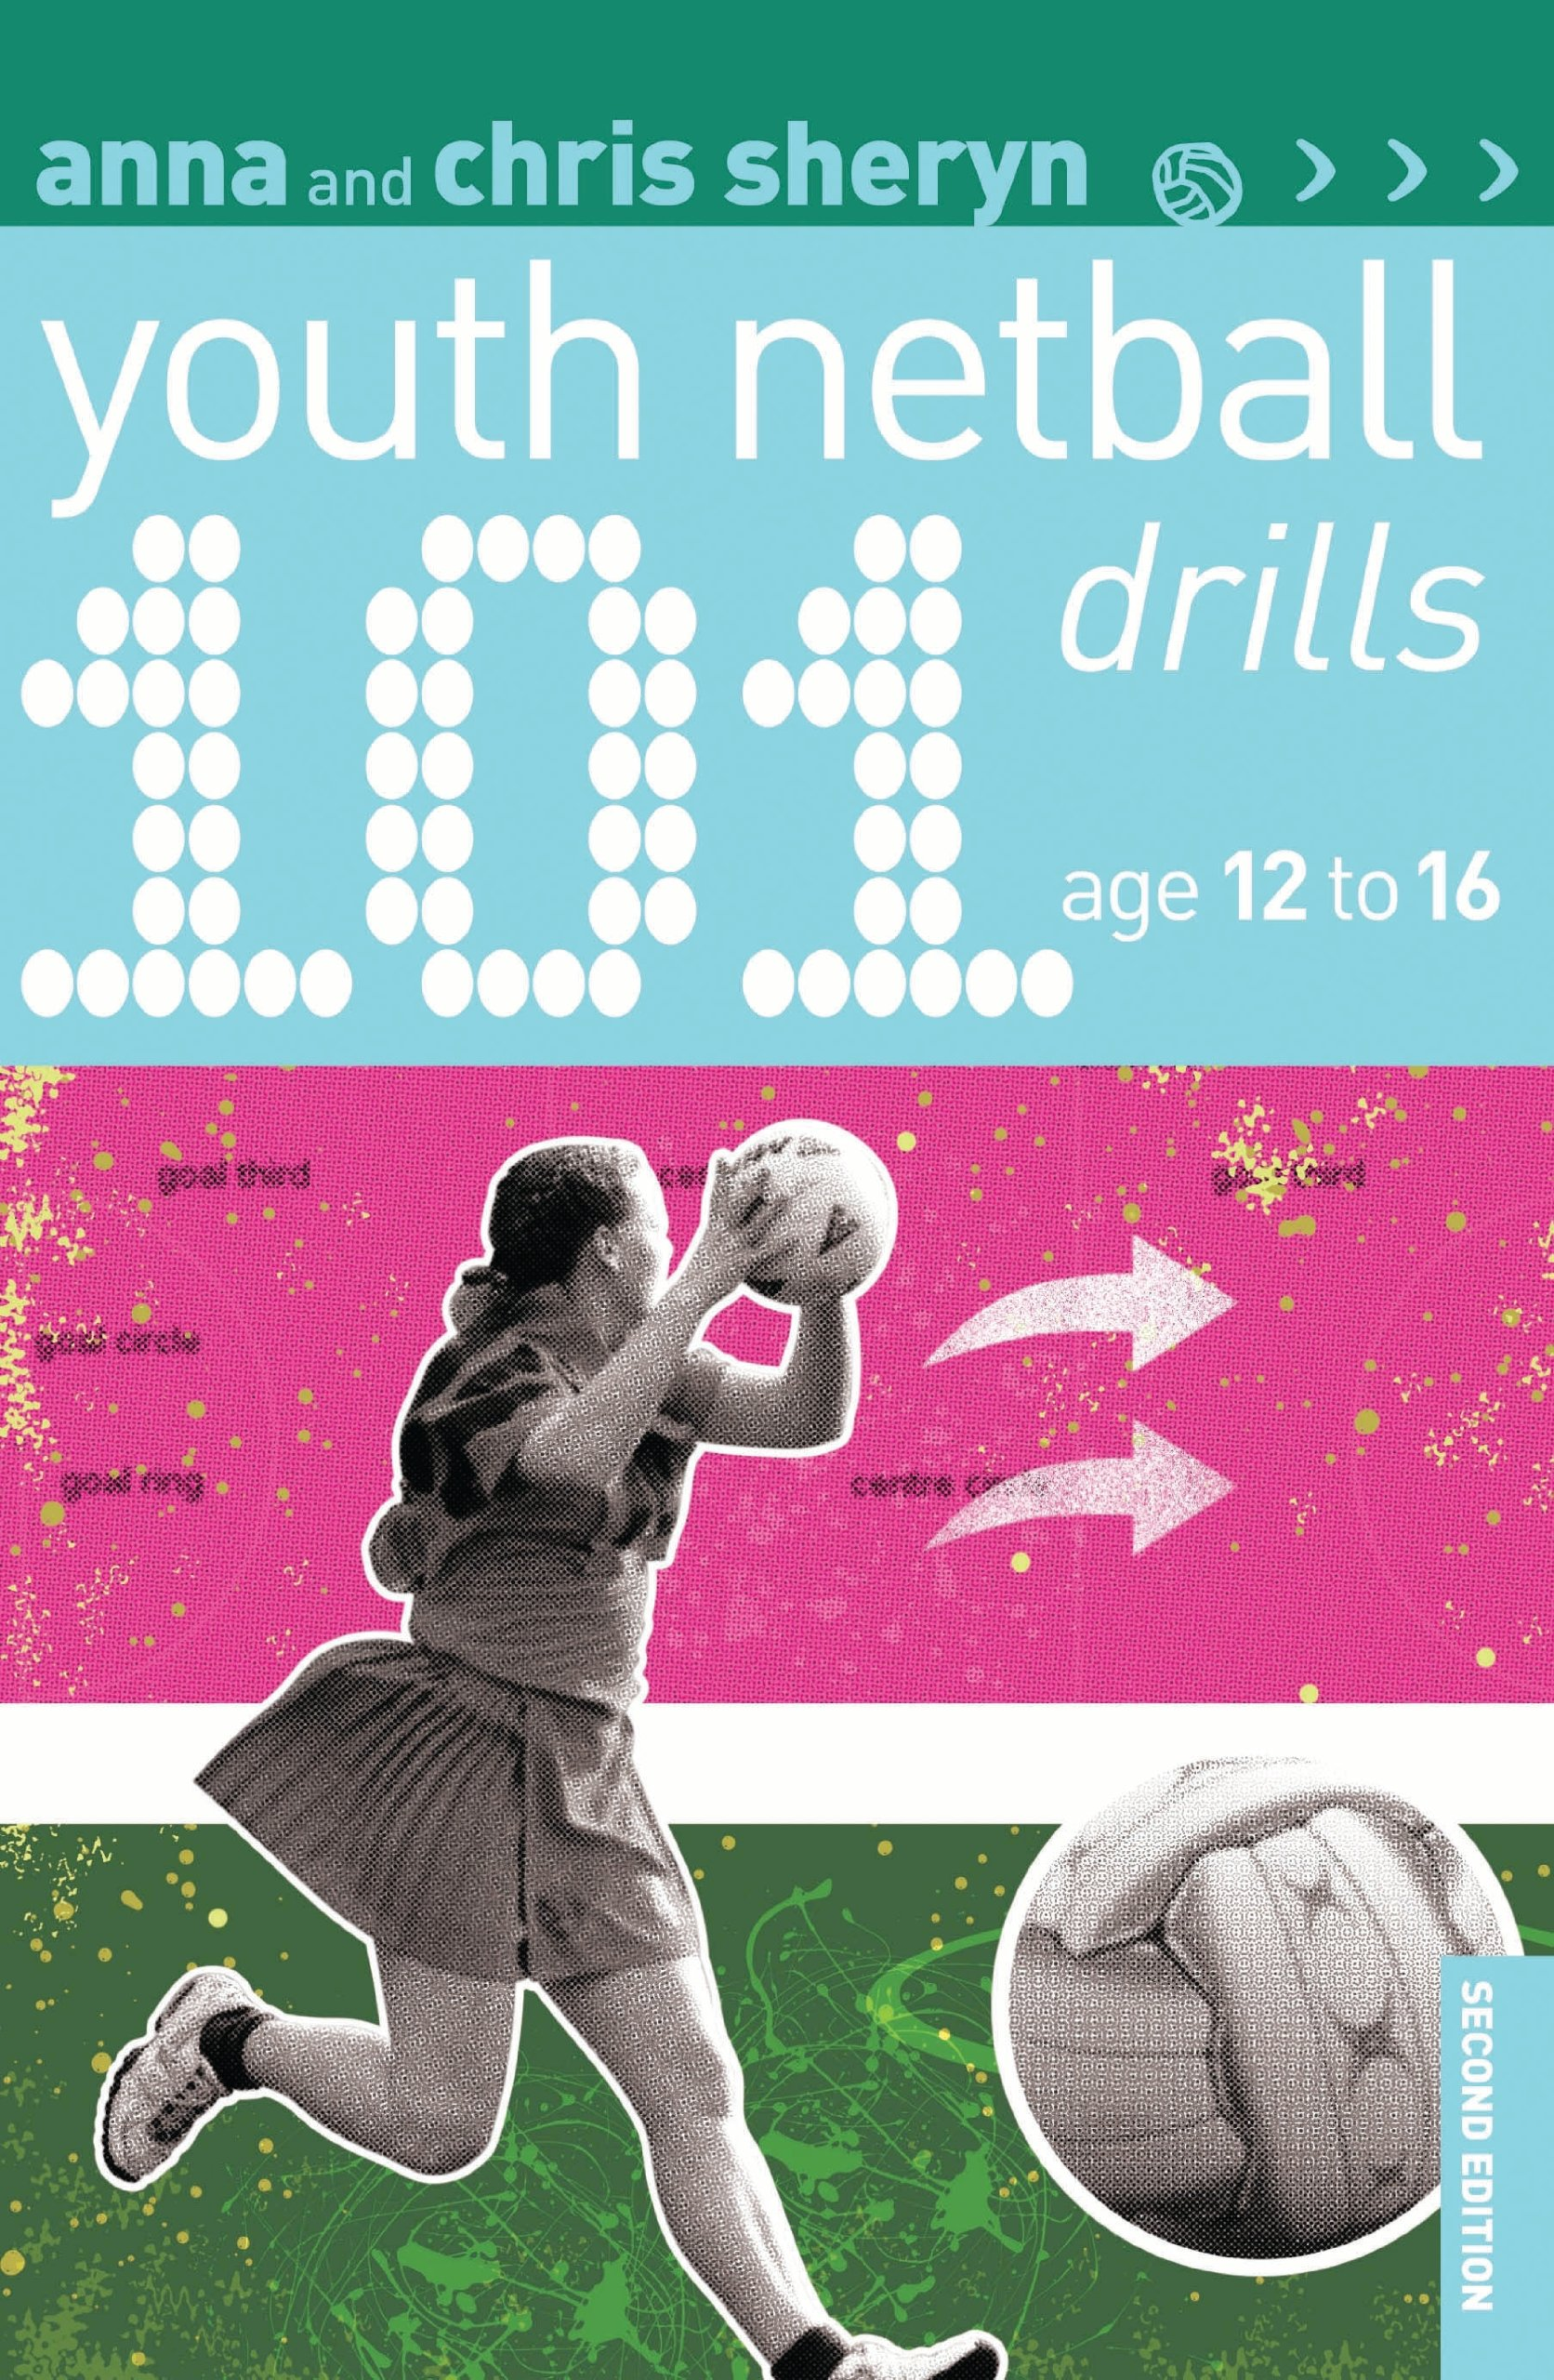 101 Youth Netball Drills Age 12-16 (101 Drills) (English Edition)